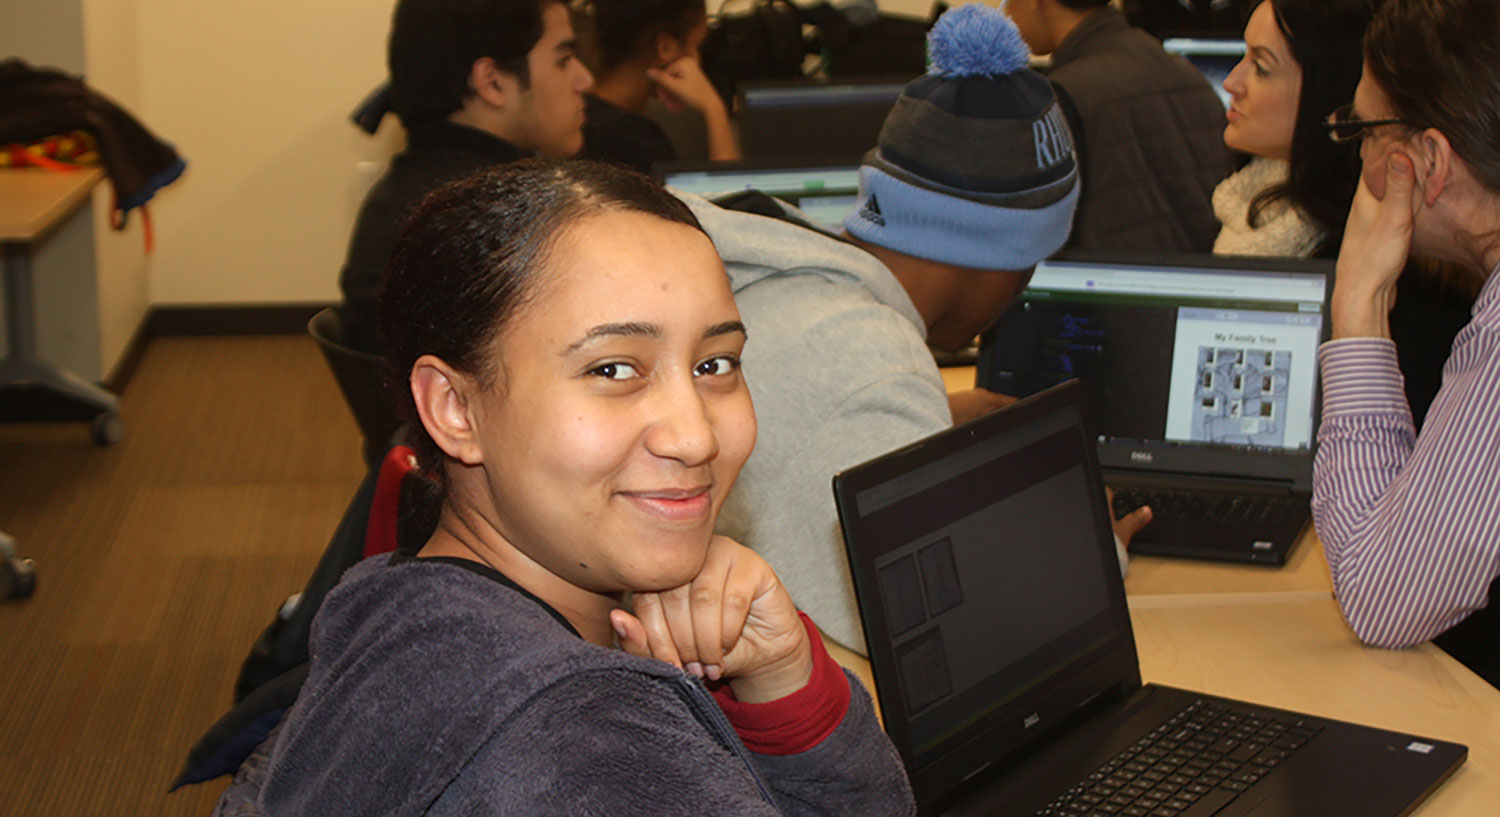 A participant in a PPL Teen Squad Programs smiles at the camera.